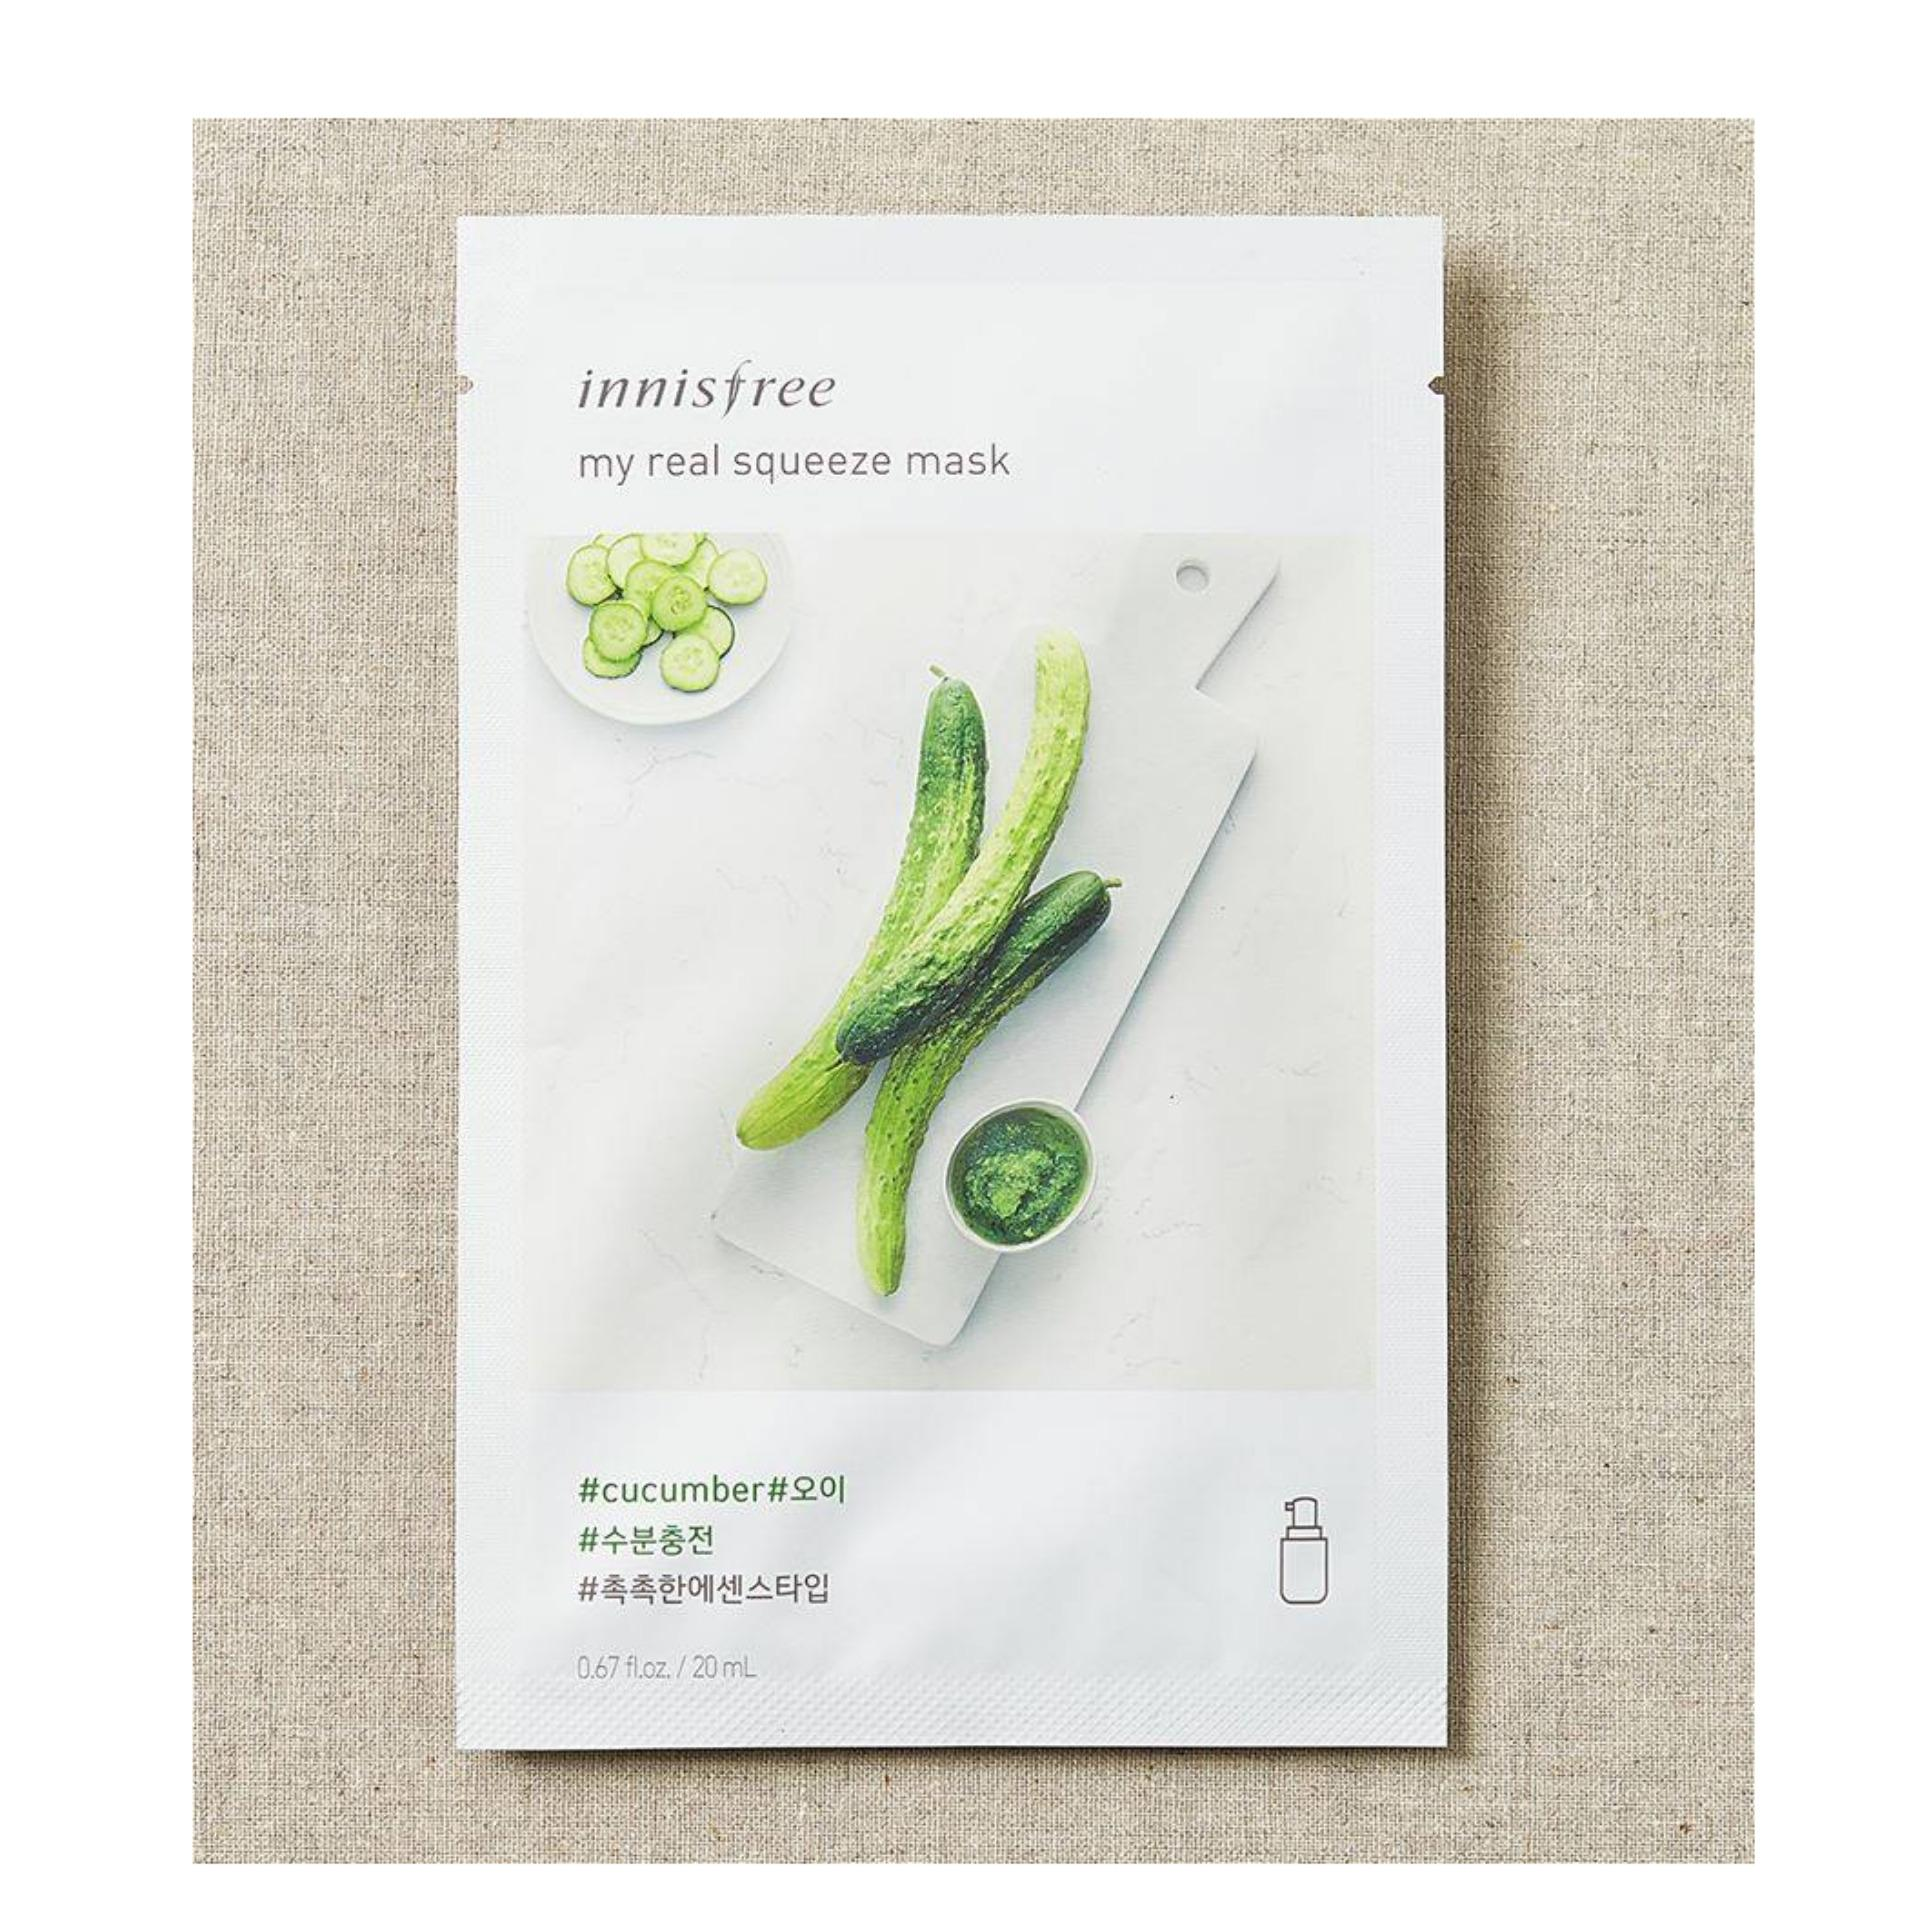 Buy Dermalbenchinnisfree Face Mask Packs At Best Prices Online Innisfree Its Real Squeeze Bija 20ml My Cucumber